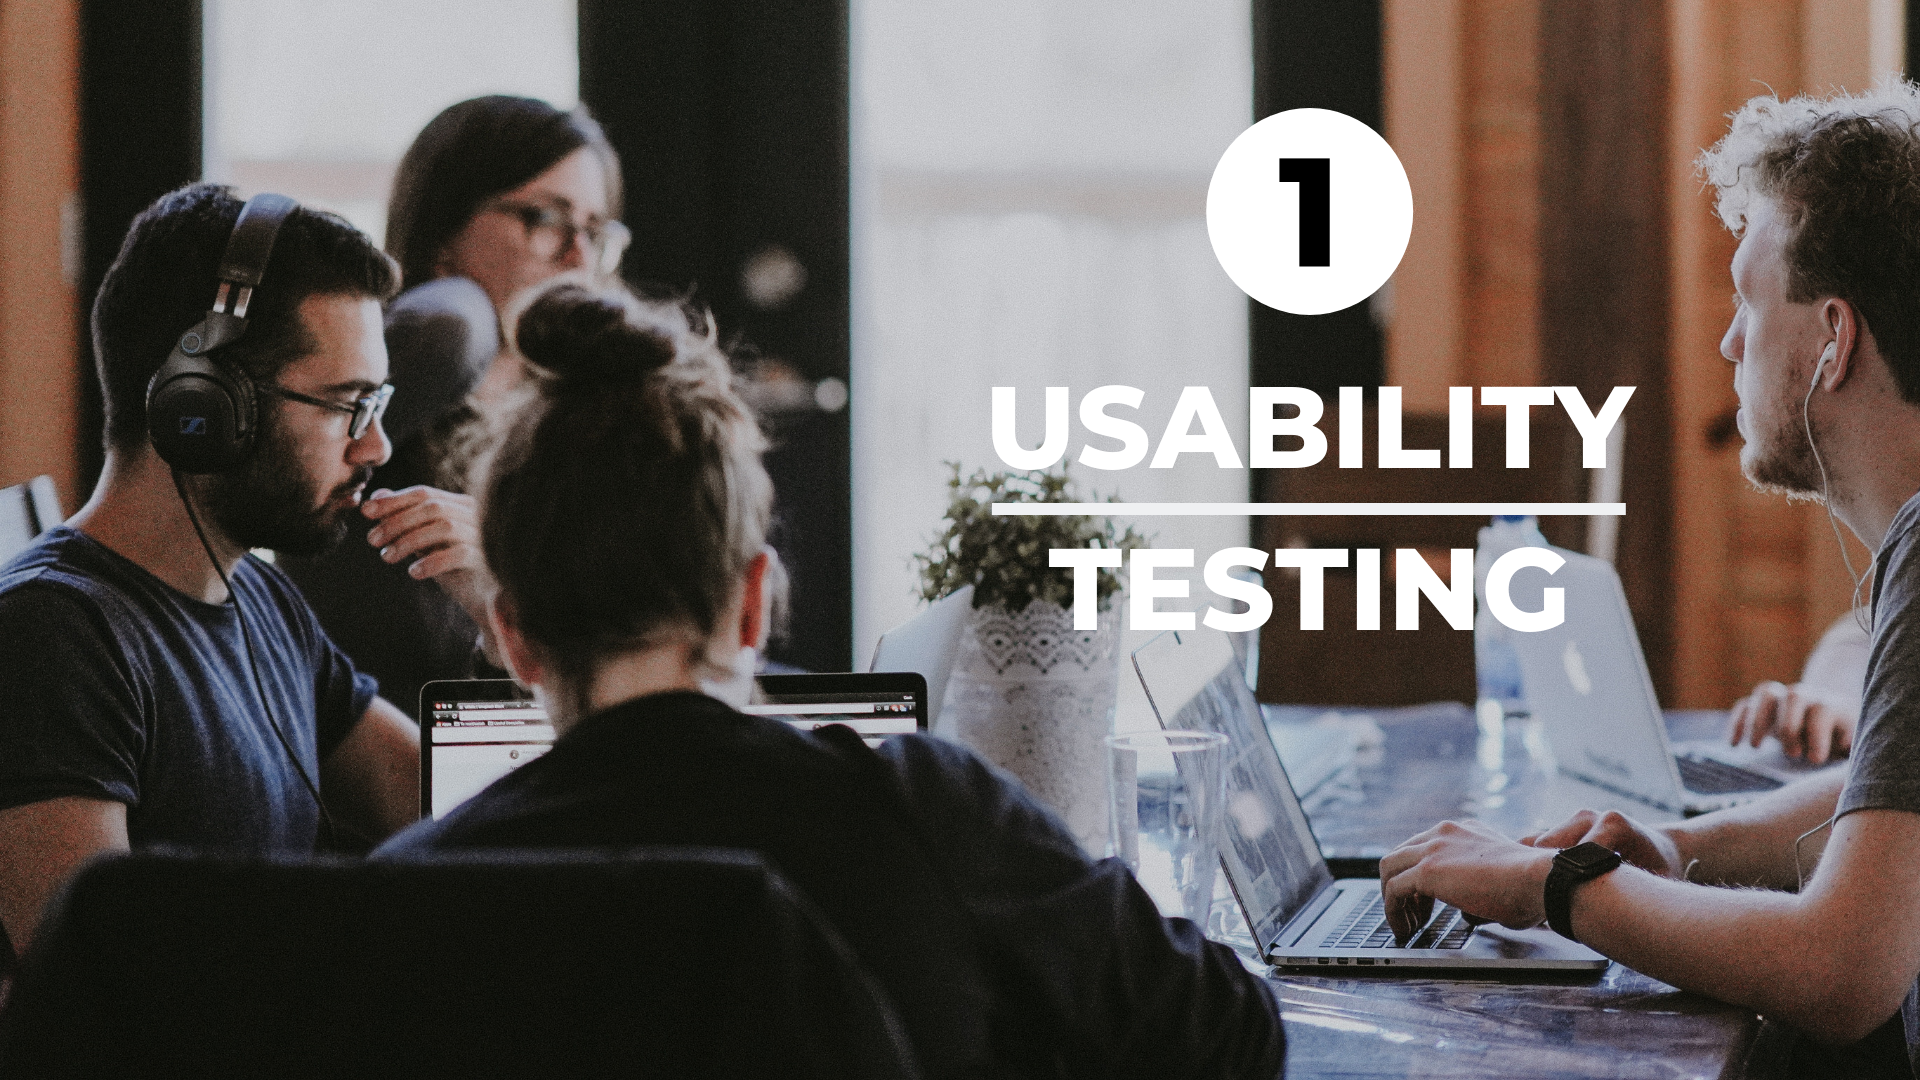 Usability and Testing